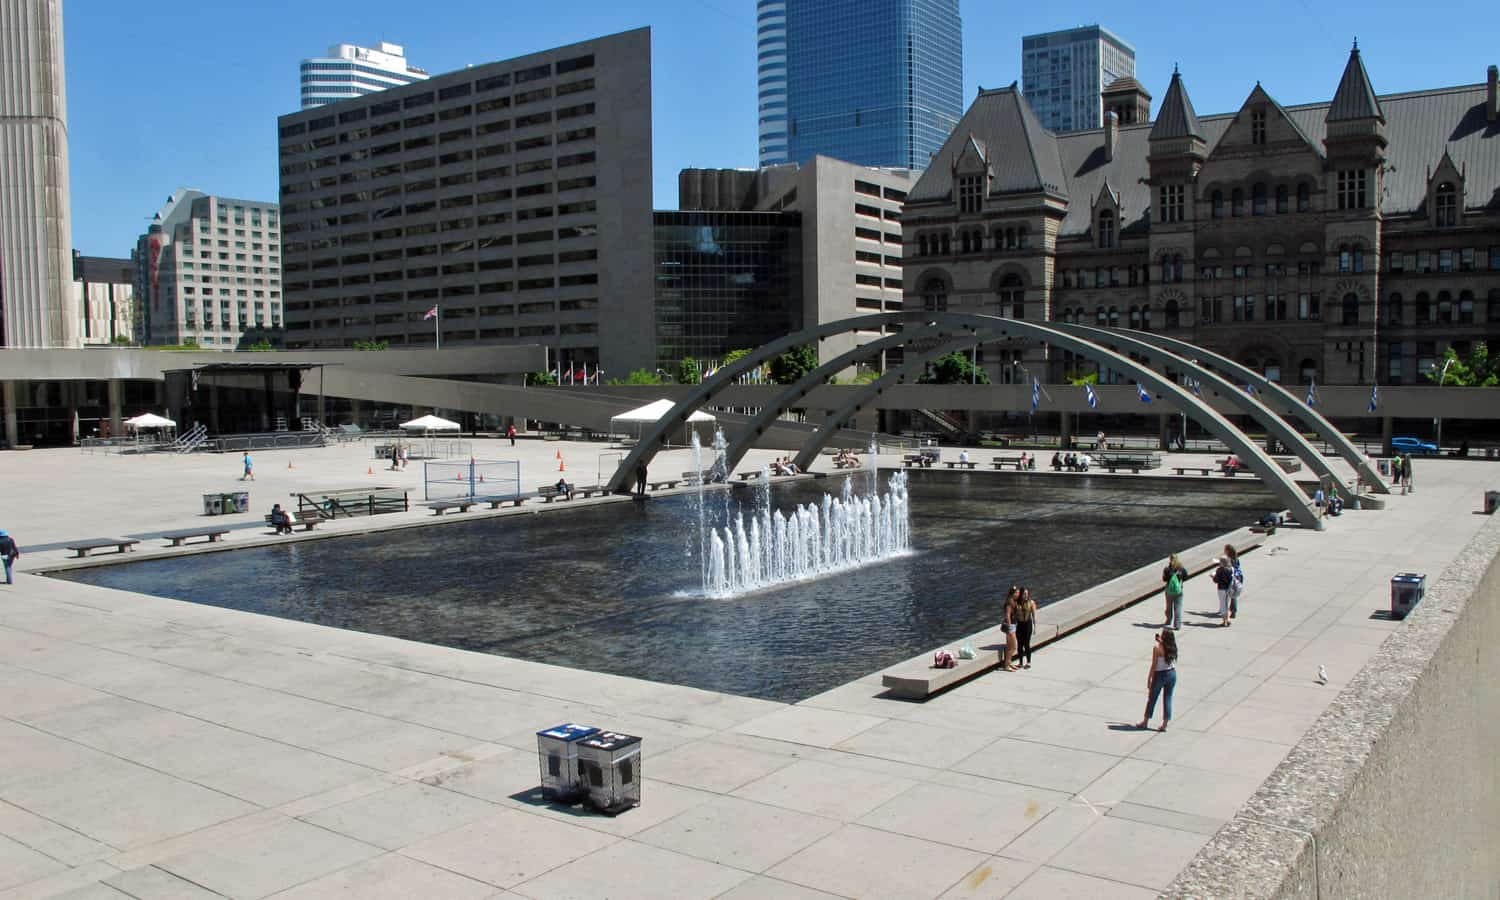 Looking across Nathan Phillips Square with the former City Hall in the background